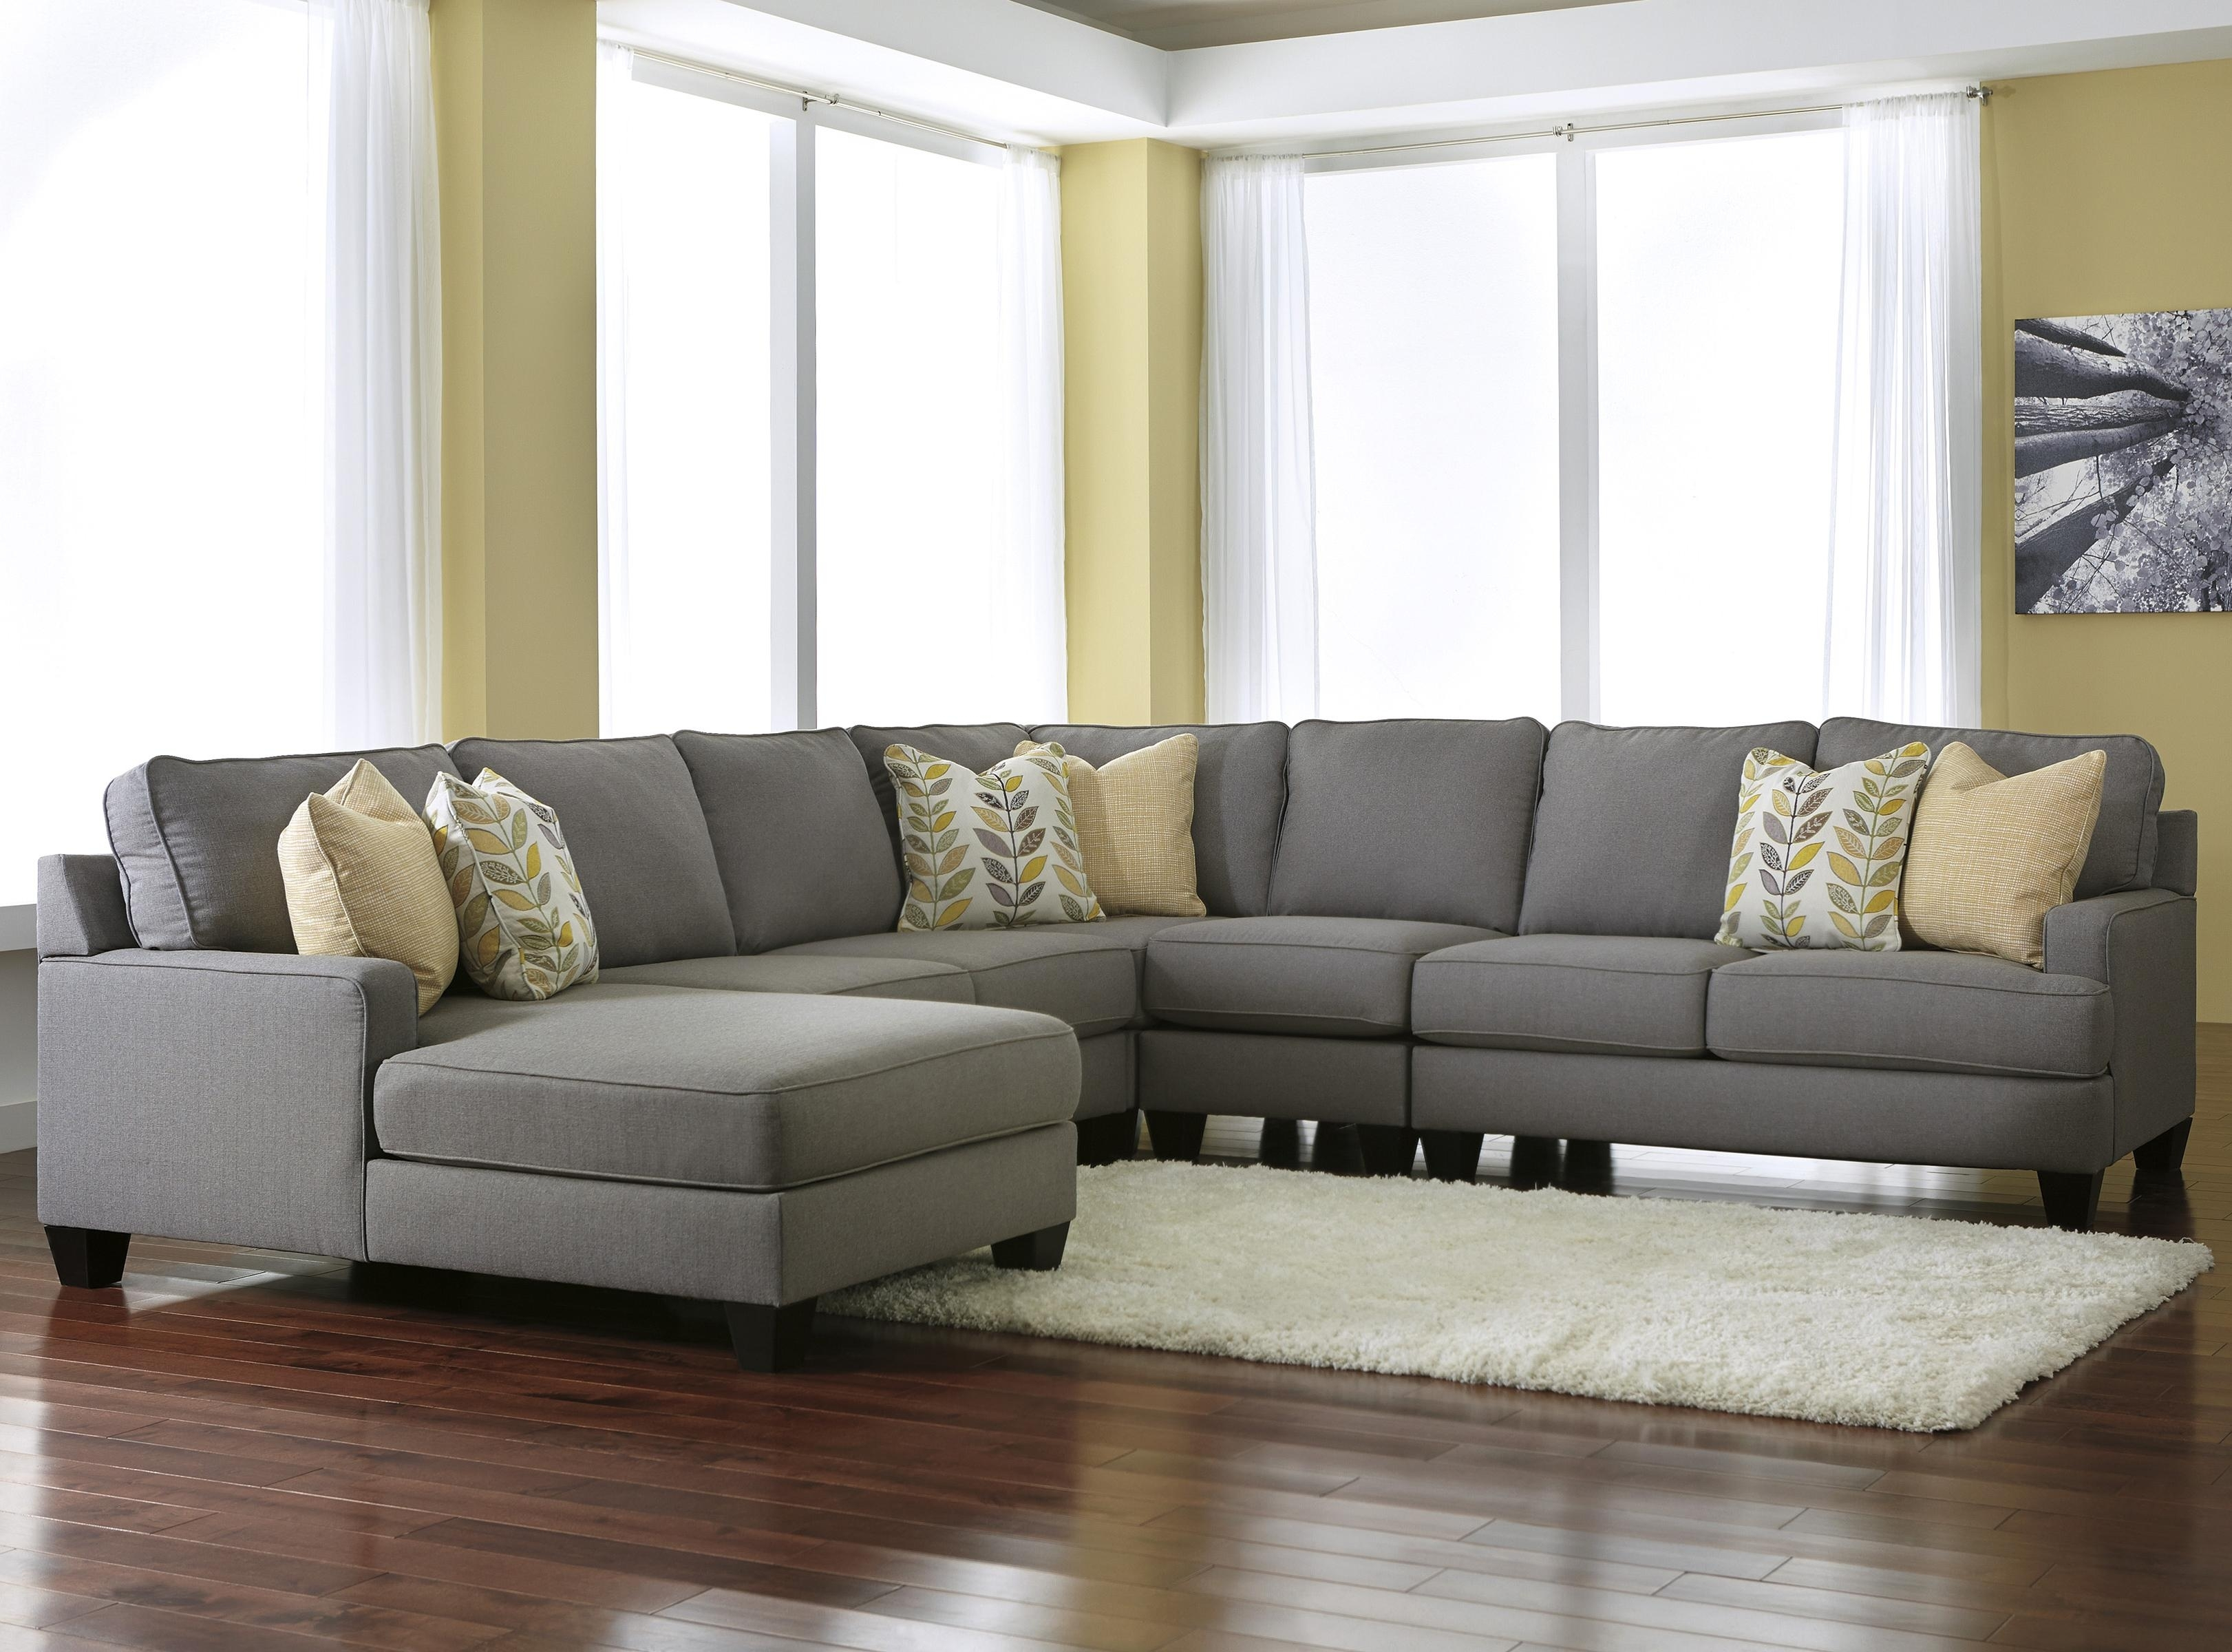 Signature Designashley Chamberly – Alloy Modern 5 Piece With Regard To St Cloud Mn Sectional Sofas (Image 8 of 10)